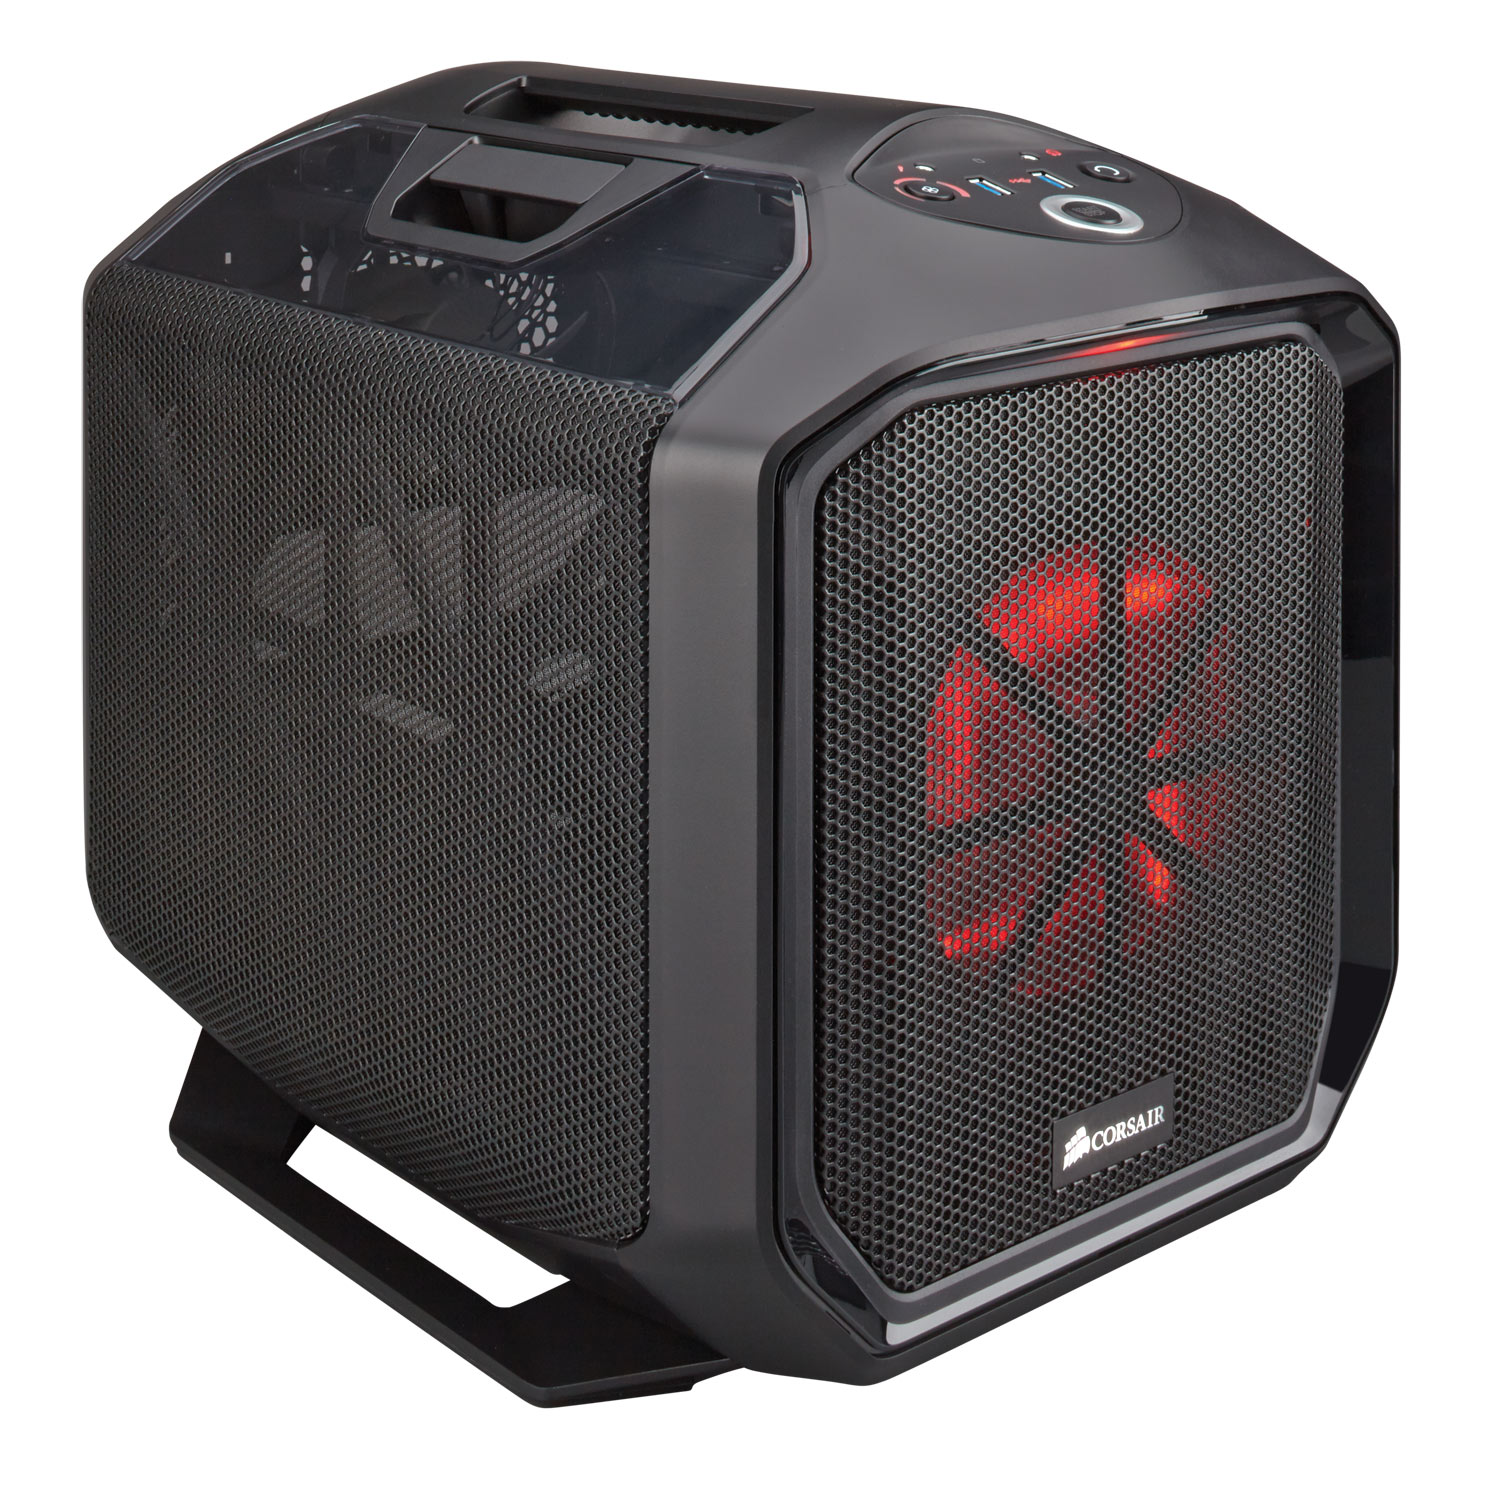 corsair graphite 380t noir bo tier pc corsair sur. Black Bedroom Furniture Sets. Home Design Ideas